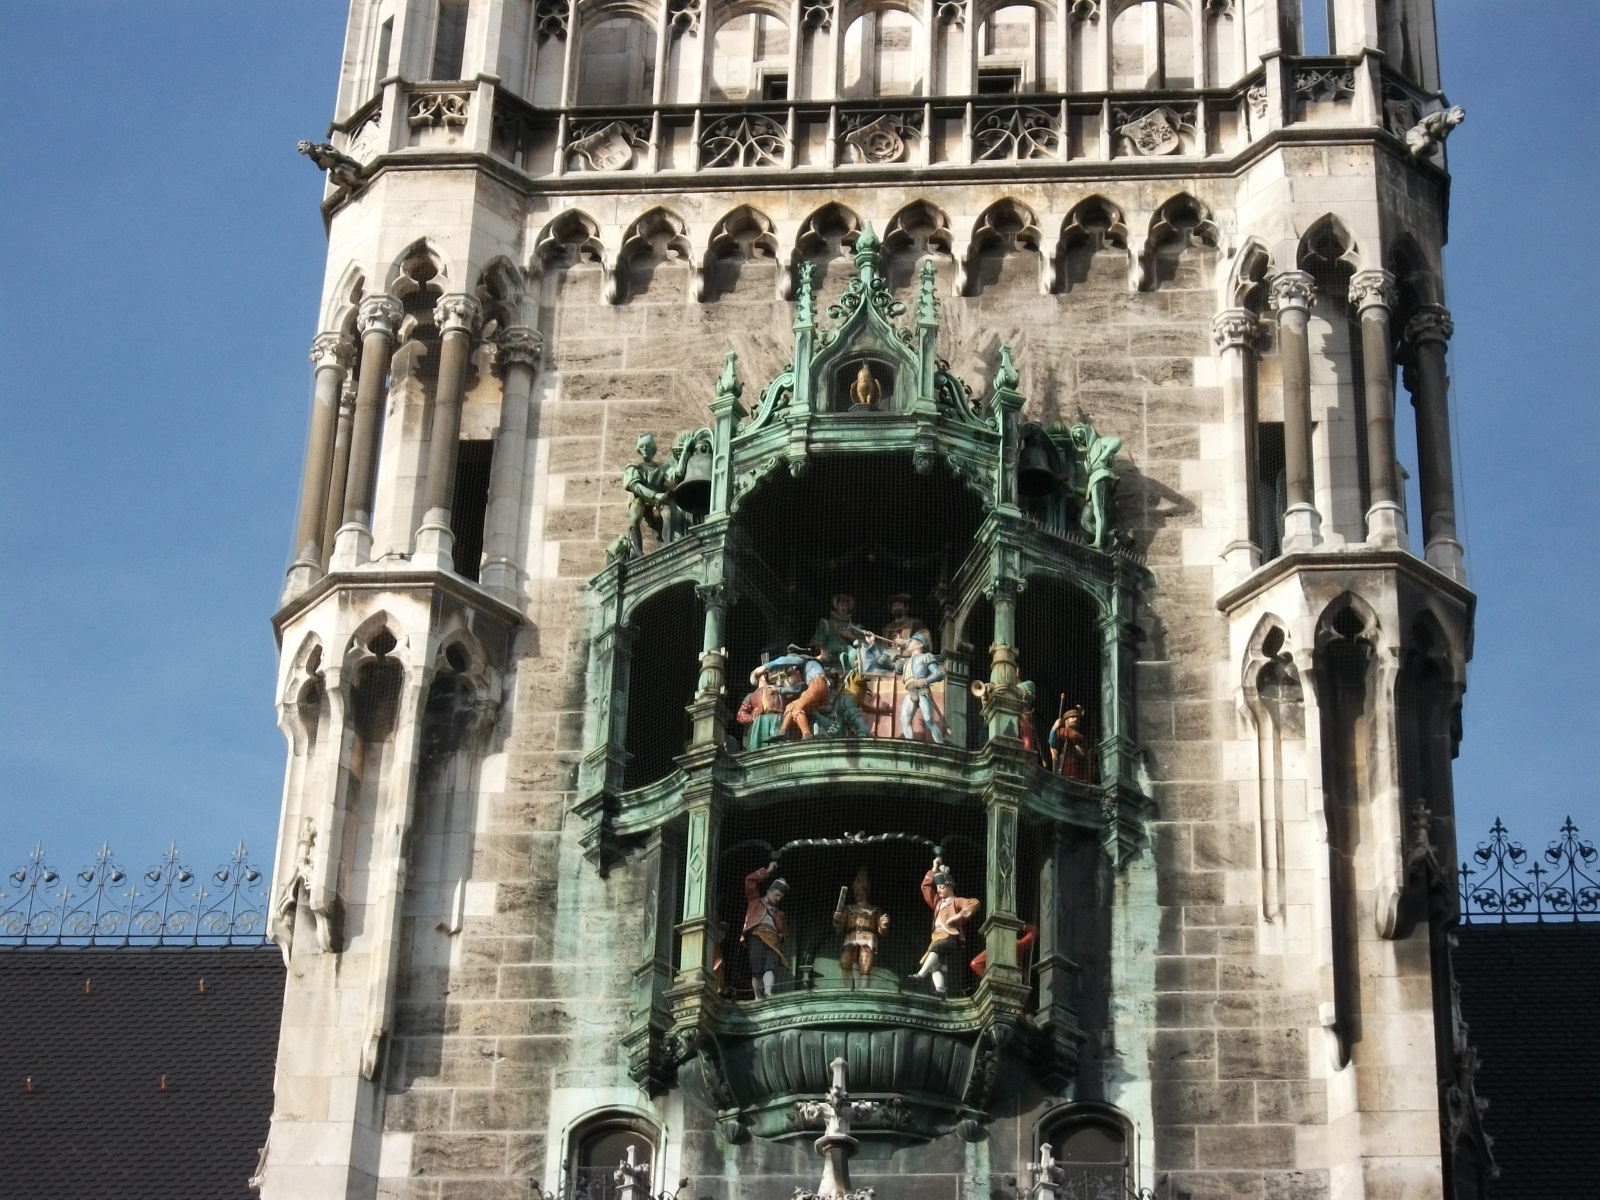 A Londoner from Afar Goes to Munich1 - New Townhall, Marien Platz 3